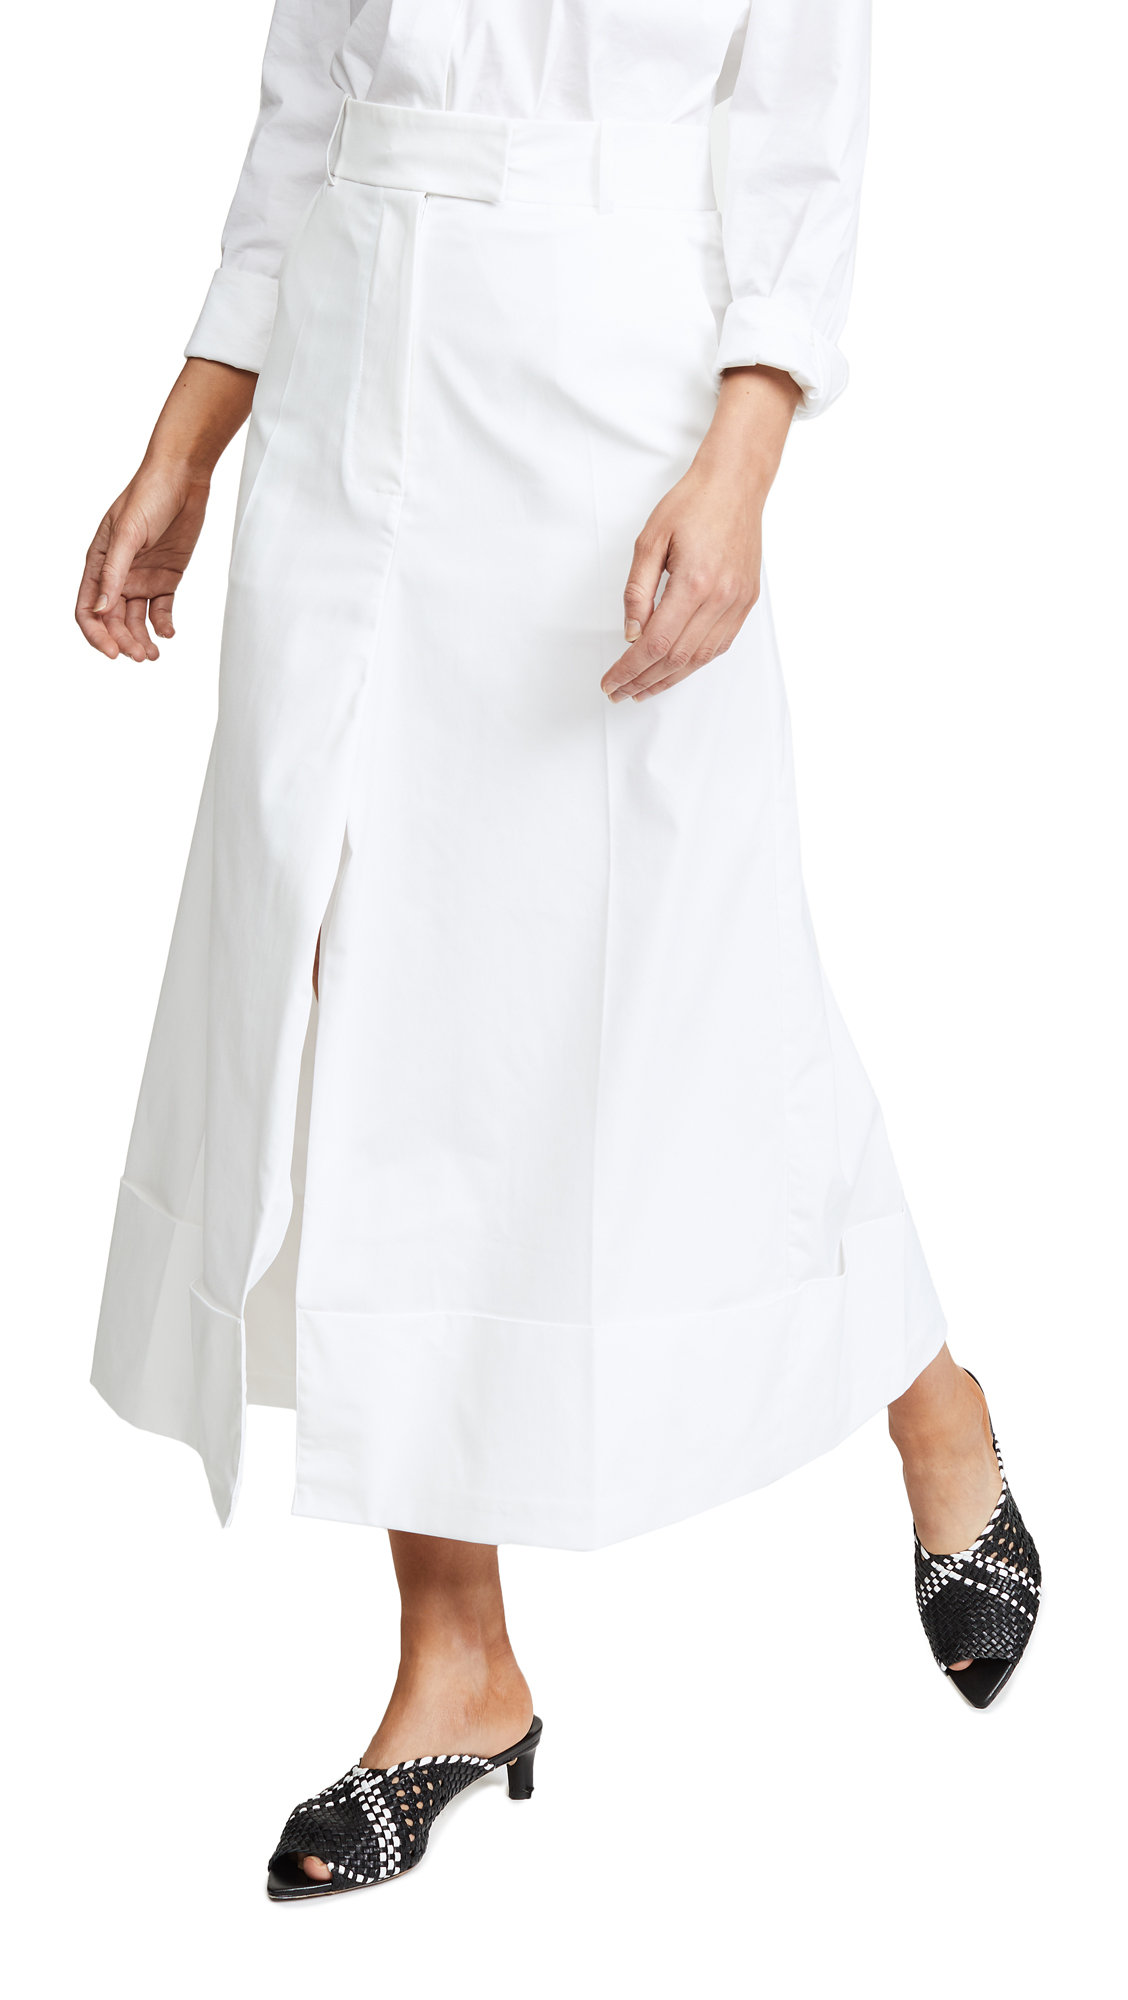 A.W.A.K.E. Pants Skirt In White